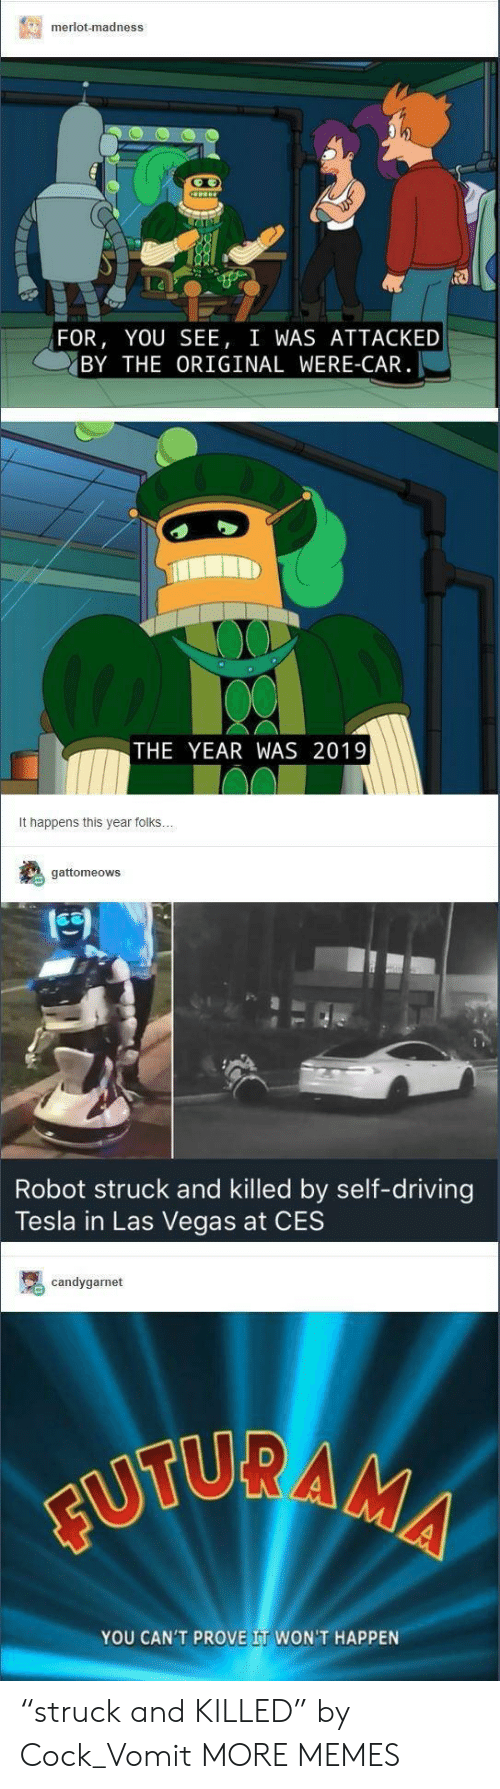 "Dank, Driving, and Memes: merlot-madness  FOR, YOU SEE, I WAS ATTACKED  BY THE ORIGINAL WERE-CAR  THE YEAR WAS 2019  It happens this year folks  gattomeows  Robot struck and killed by self-driving  Tesla in Las Vegas at CES  candygarnet  YOU CAN'T PROVE IT WON'T HAPPEN ""struck and KILLED"" by Cock_Vomit MORE MEMES"